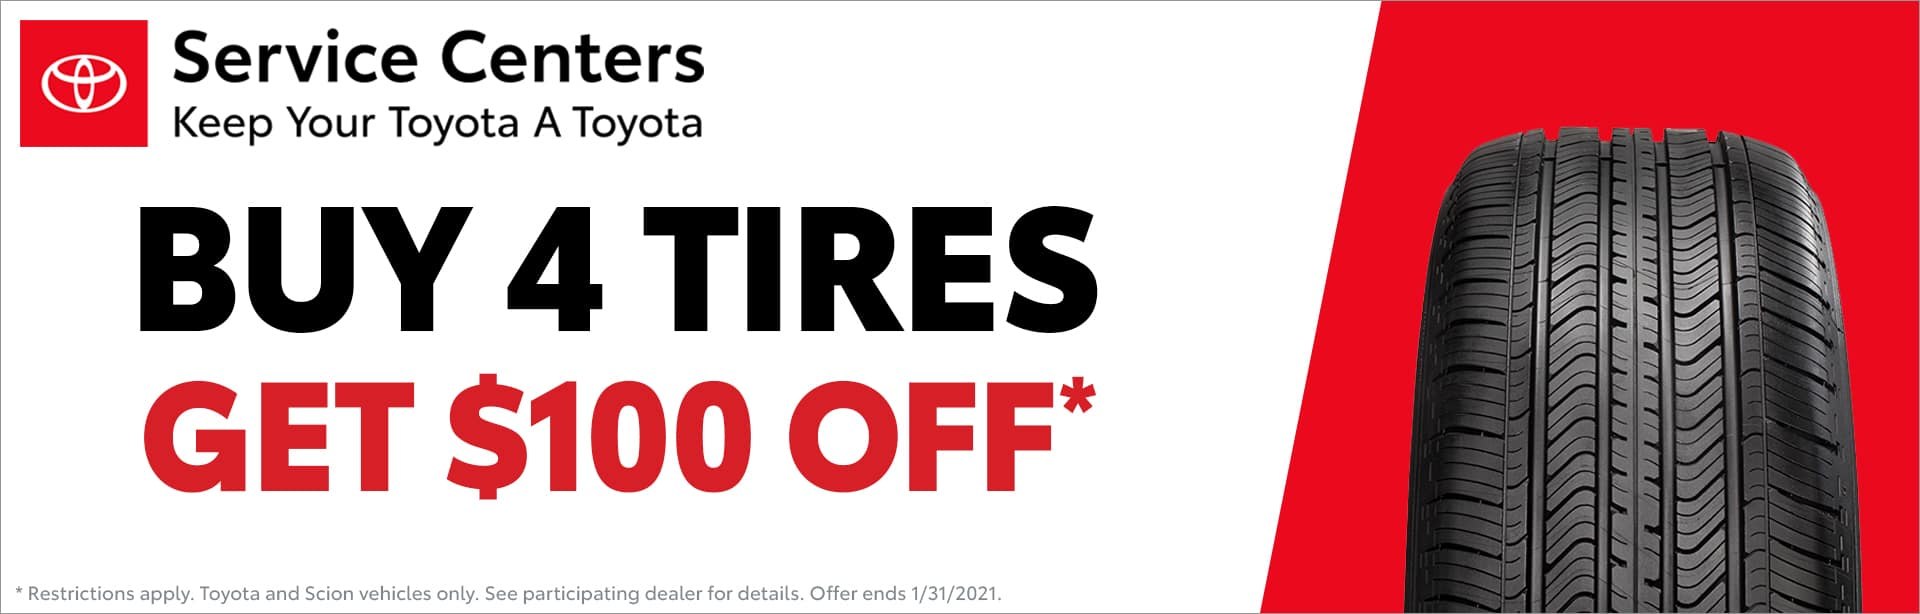 2021-01 Buy 4 Tires-$100 off_1920x614_TDDS